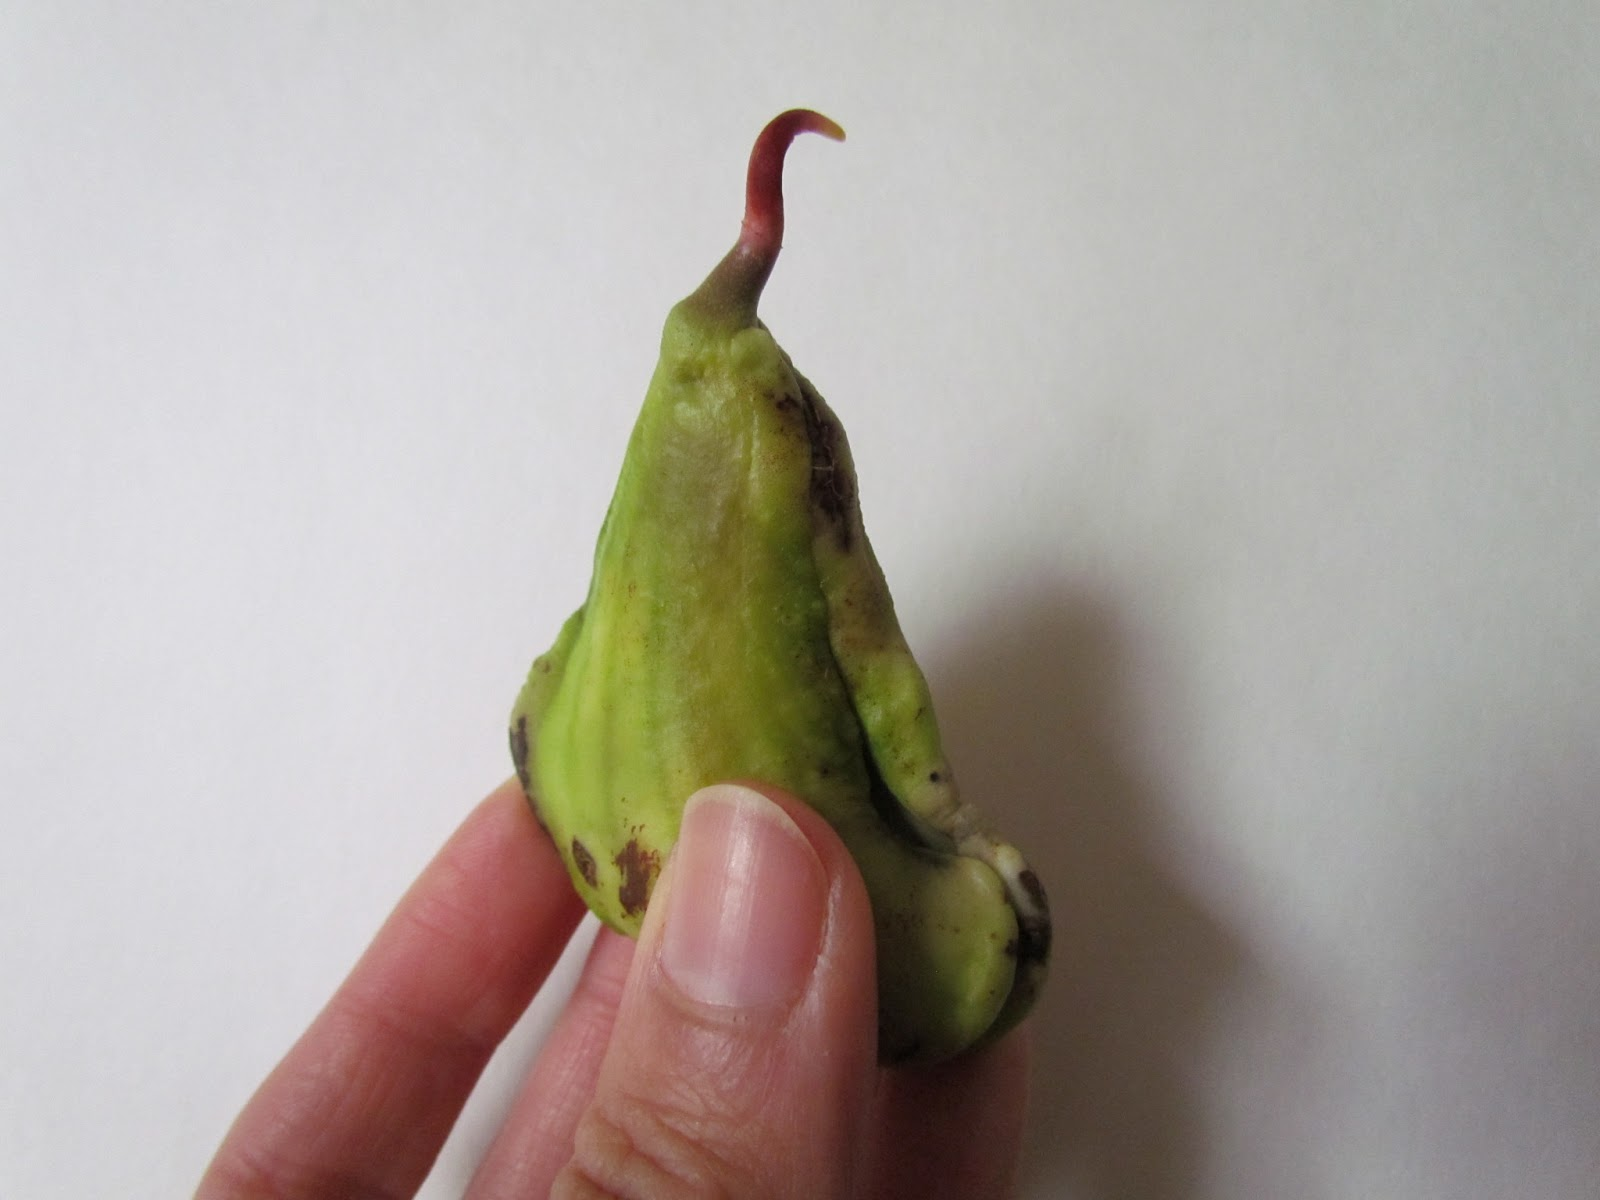 Learn To Grow: How to germinate a mango seed